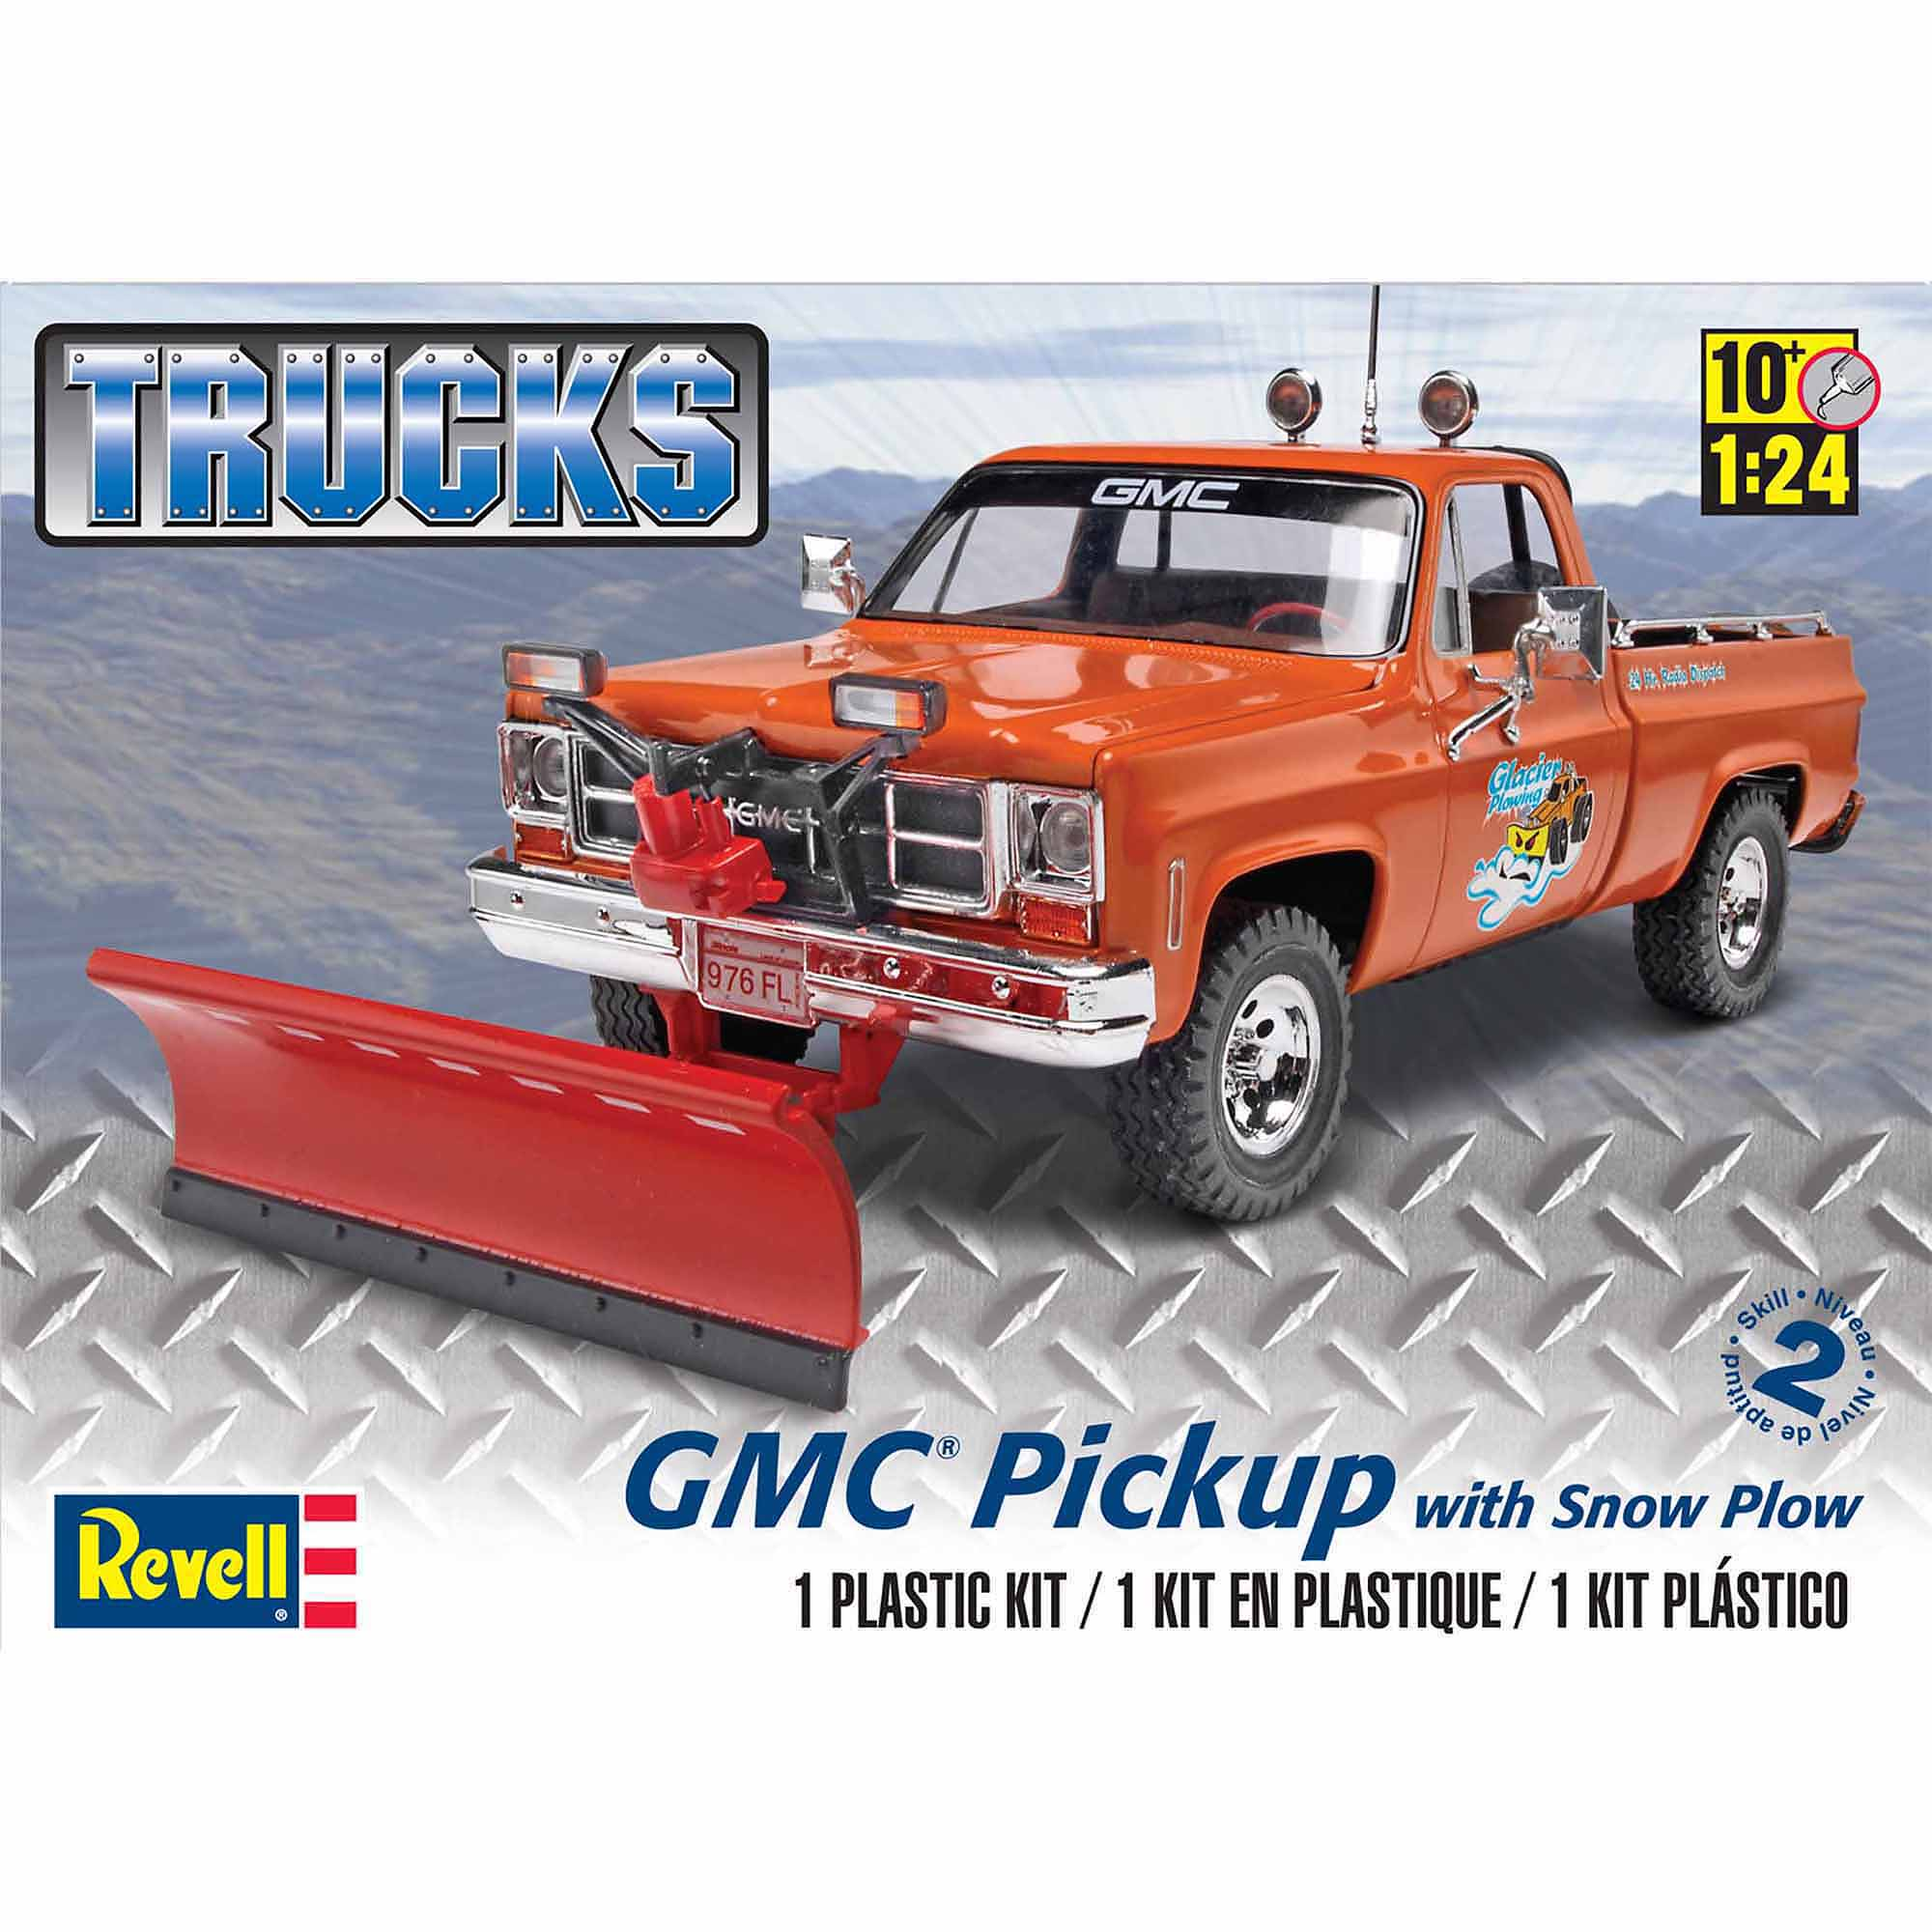 Revell 1:24 Scale GMC Pickup with Snow Plow Model Kit